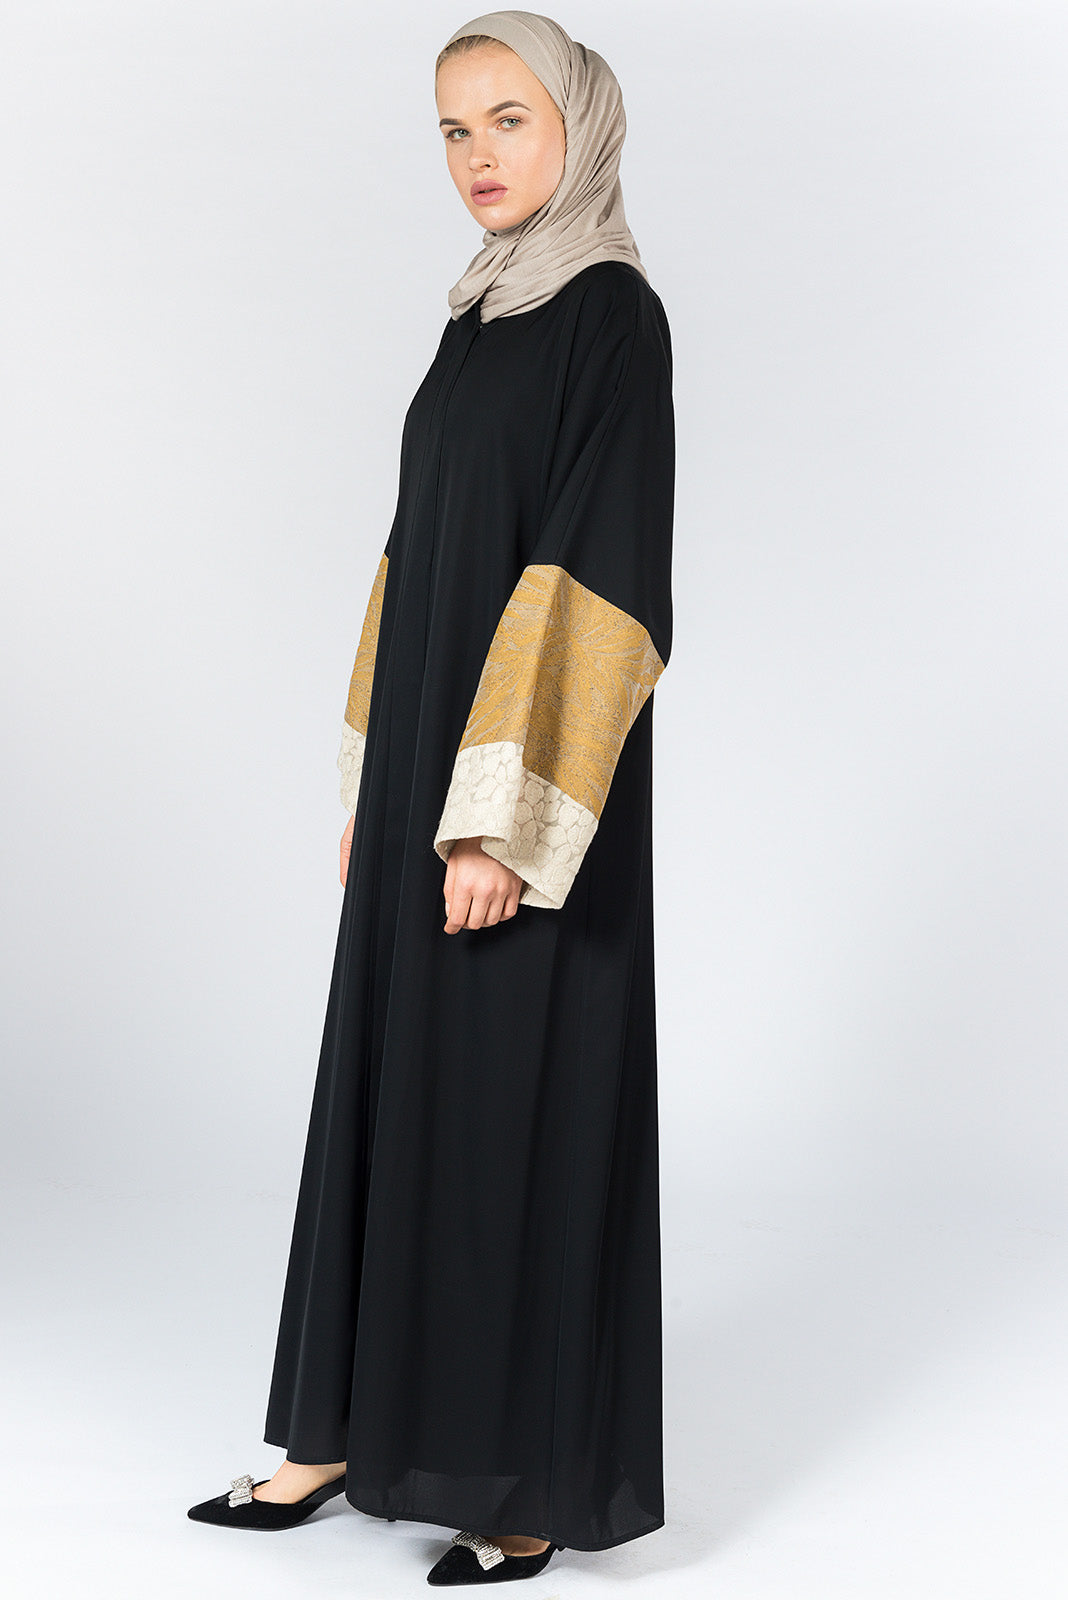 FERADJE London Rukiyya abaya UK